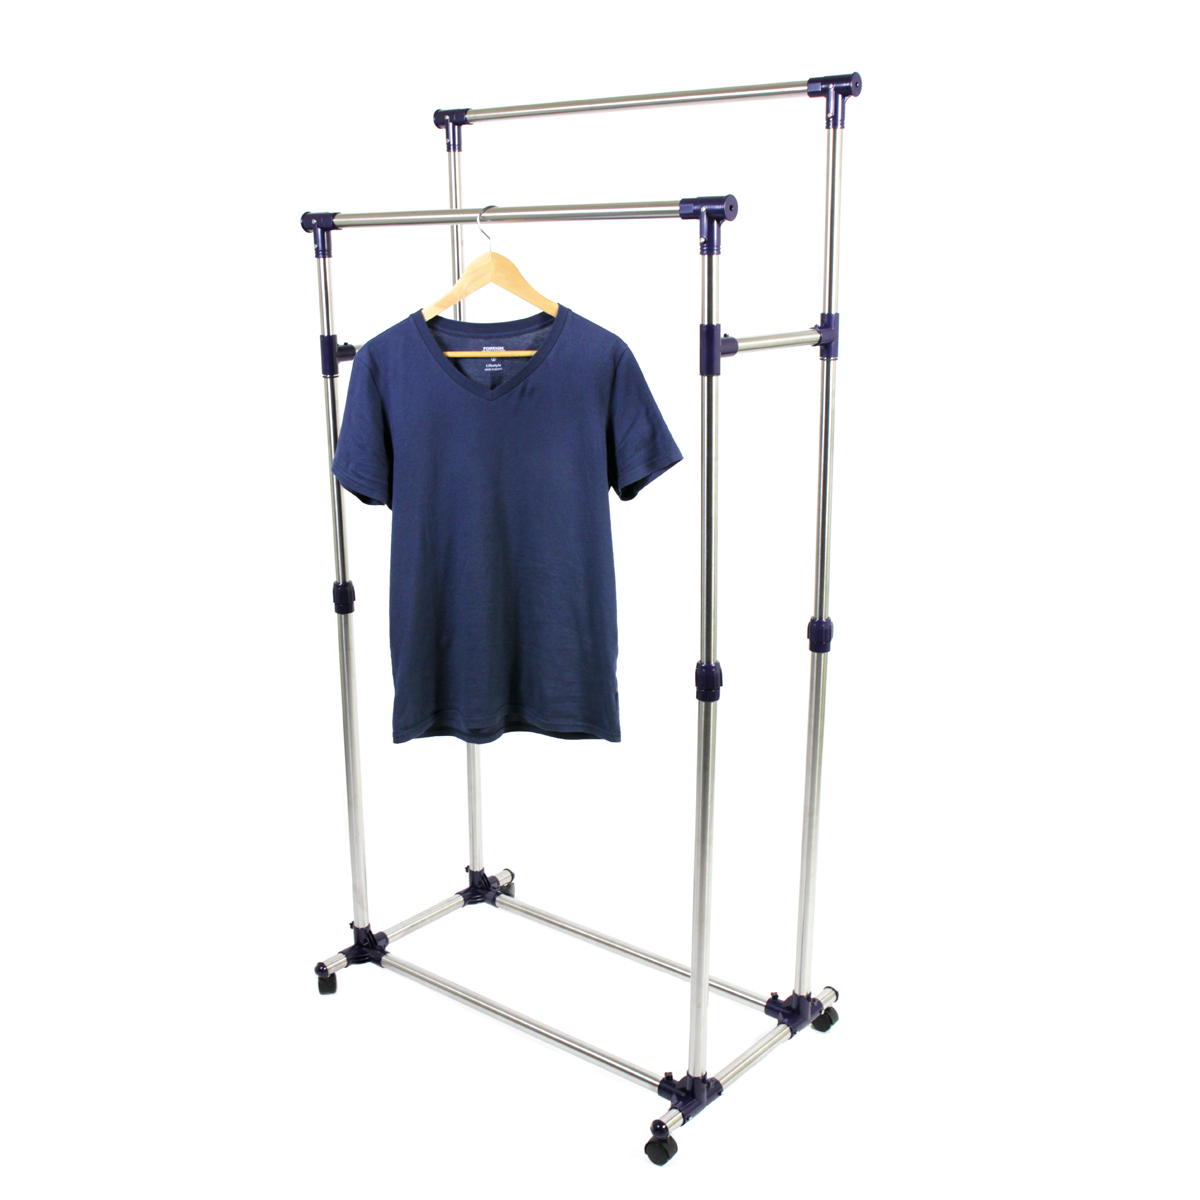 prosourcefit premium heavy duty double rail adjustable telescopic rolling clothing and garment rack